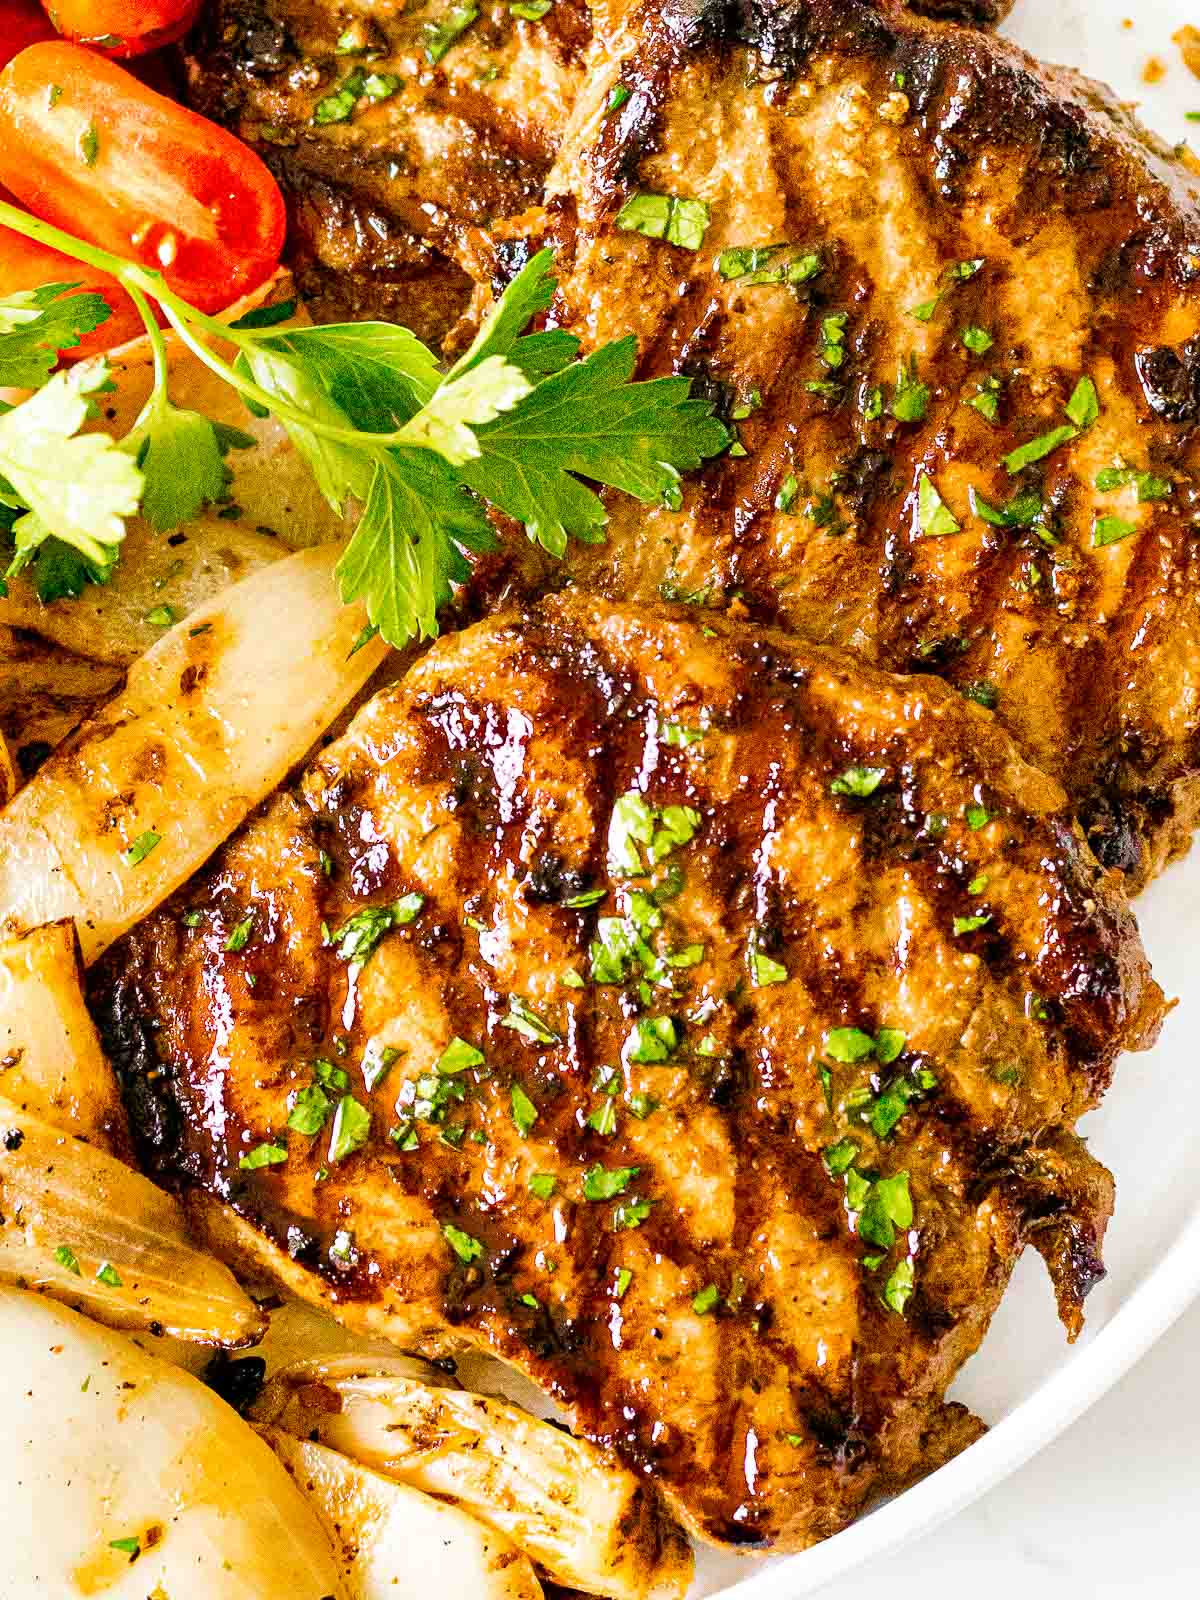 easy juicy grilled pork chops with savory marinade on a white plate with tomatoes and onions